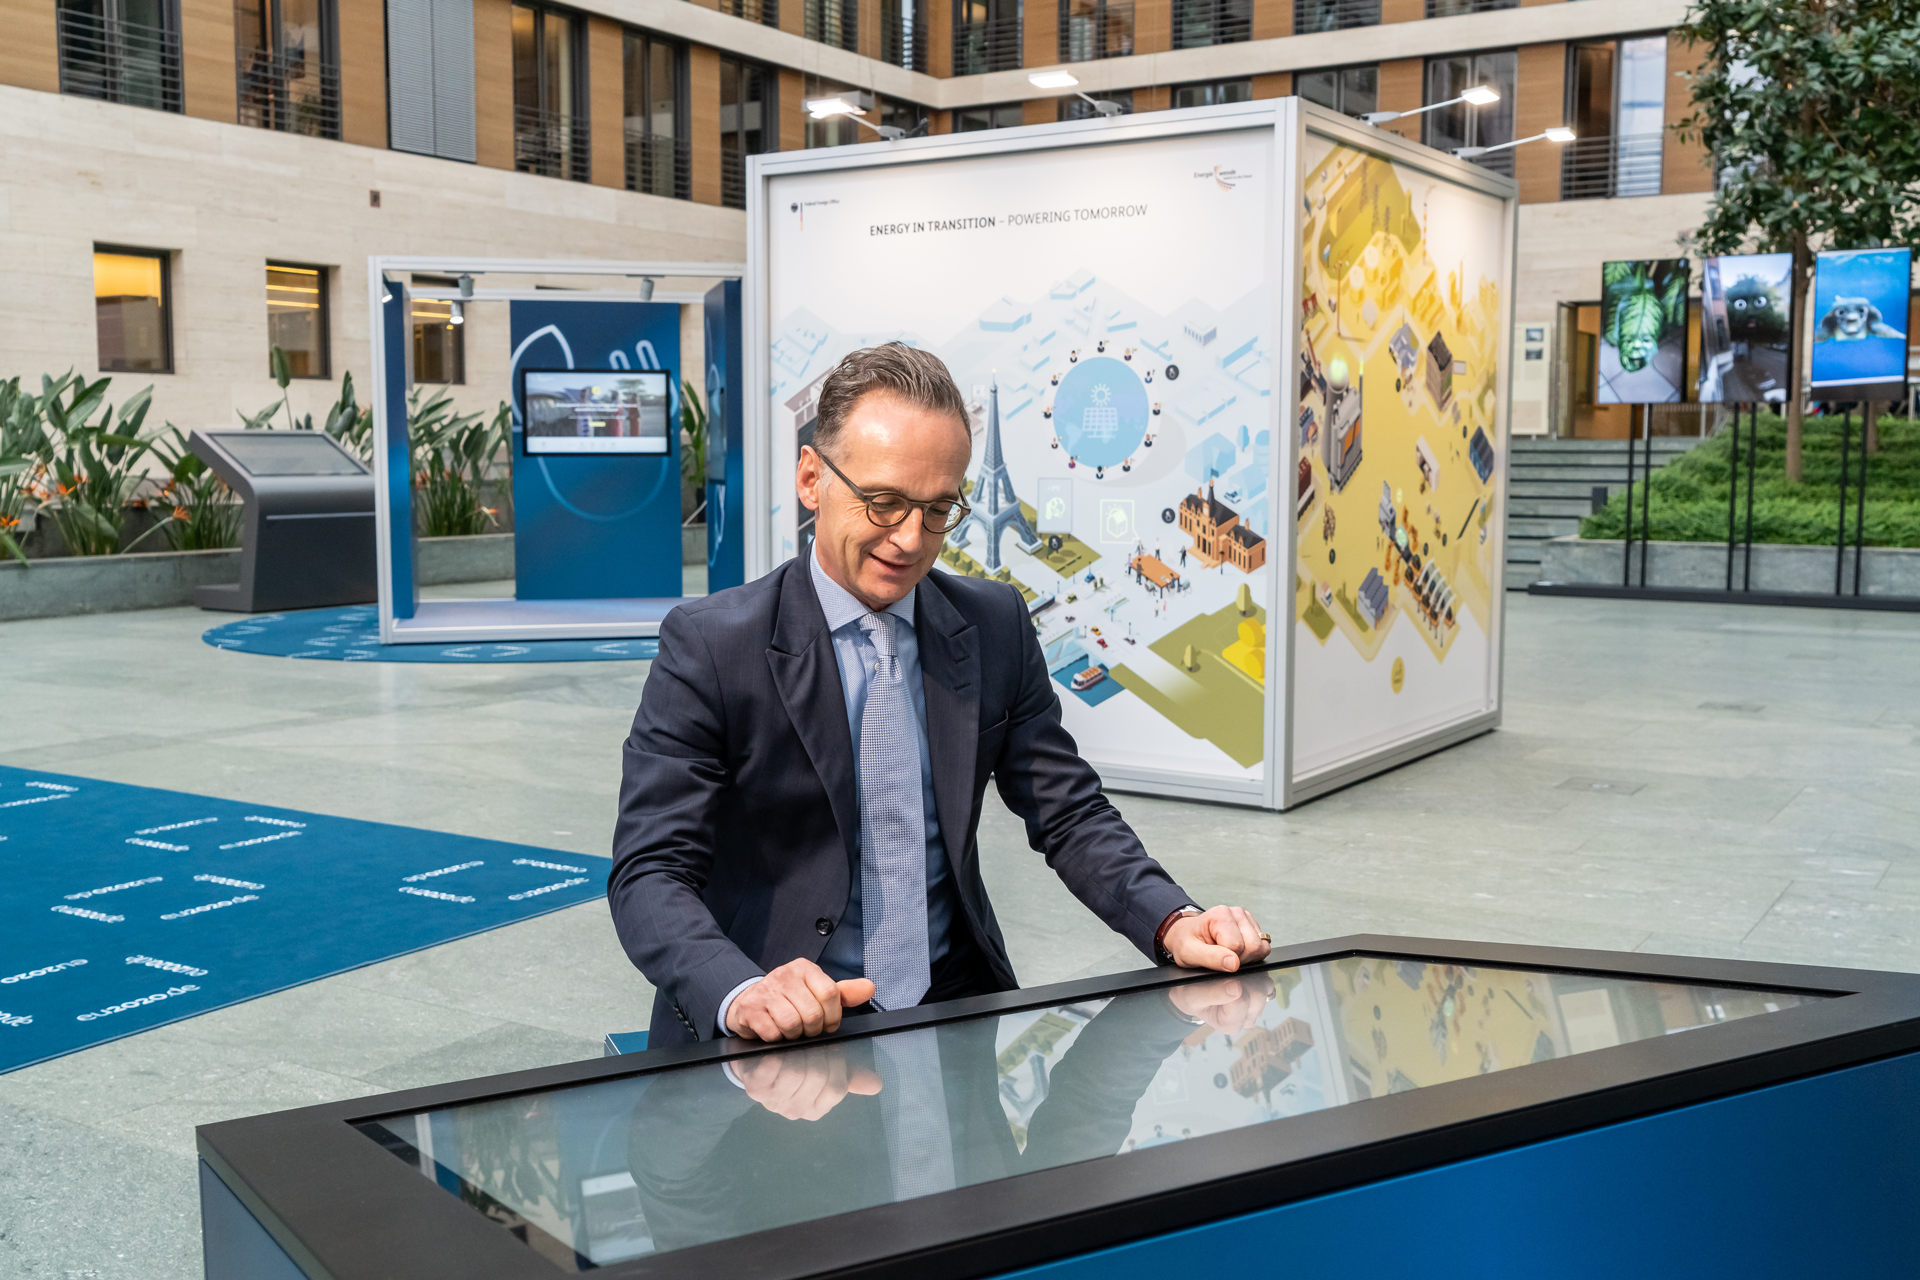 German Foreign Minister Heiko Maas is sitting at a monitor at the Mobility station and is viewing the content of this part of the exhibition on the global transformation of transport.